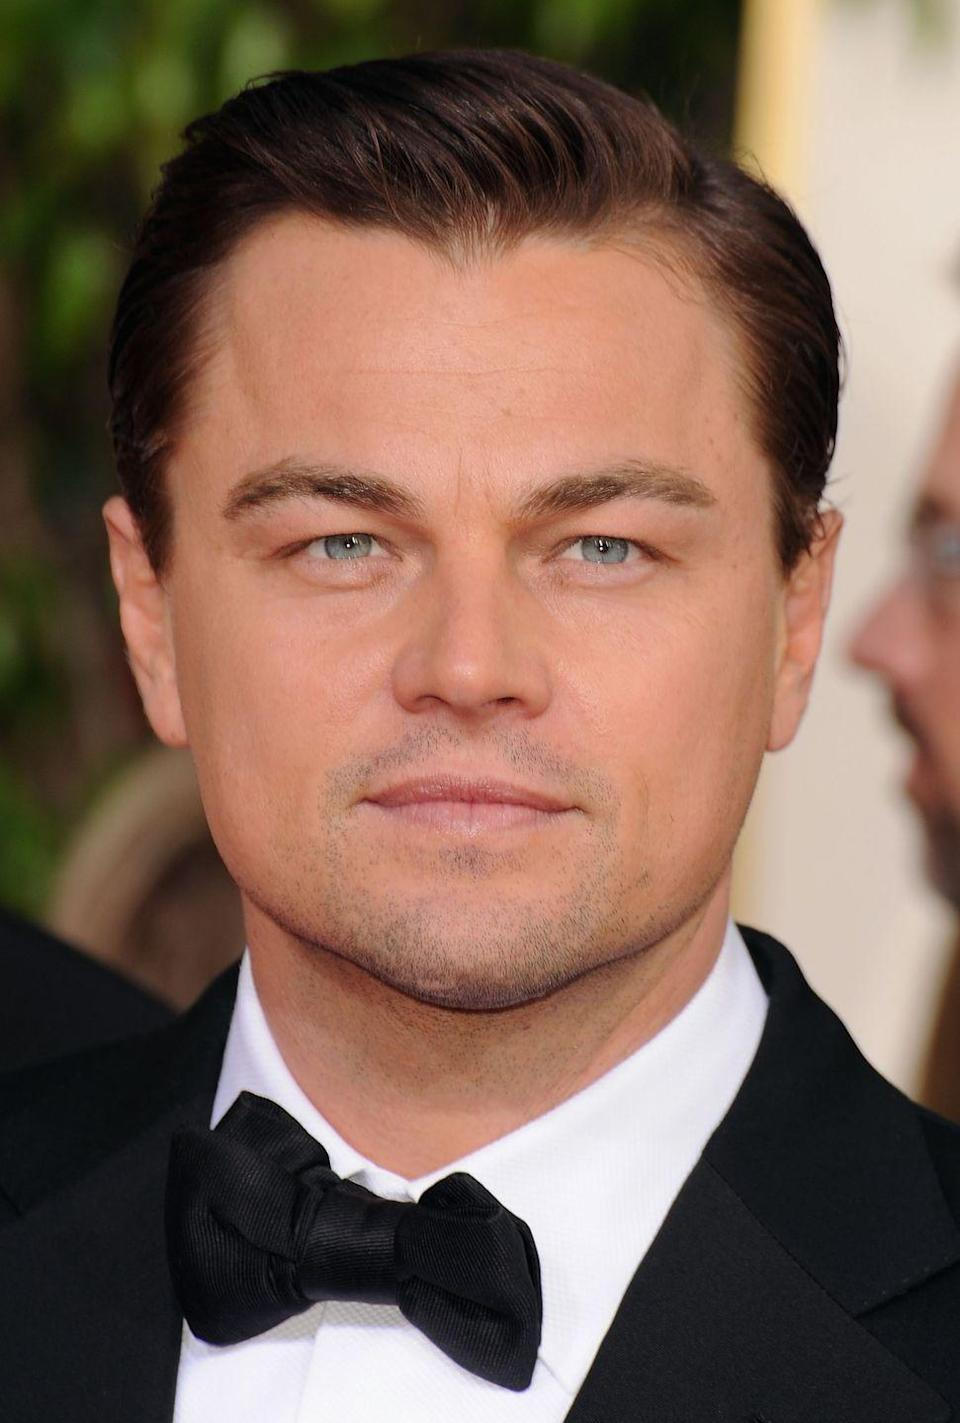 <p>Leonardo DiCaprio has been serving up serious hair envy since starring as Jack Dawson in <em>Titanic—</em>but his clean cut side part is by far one of his fan's favorites. </p>